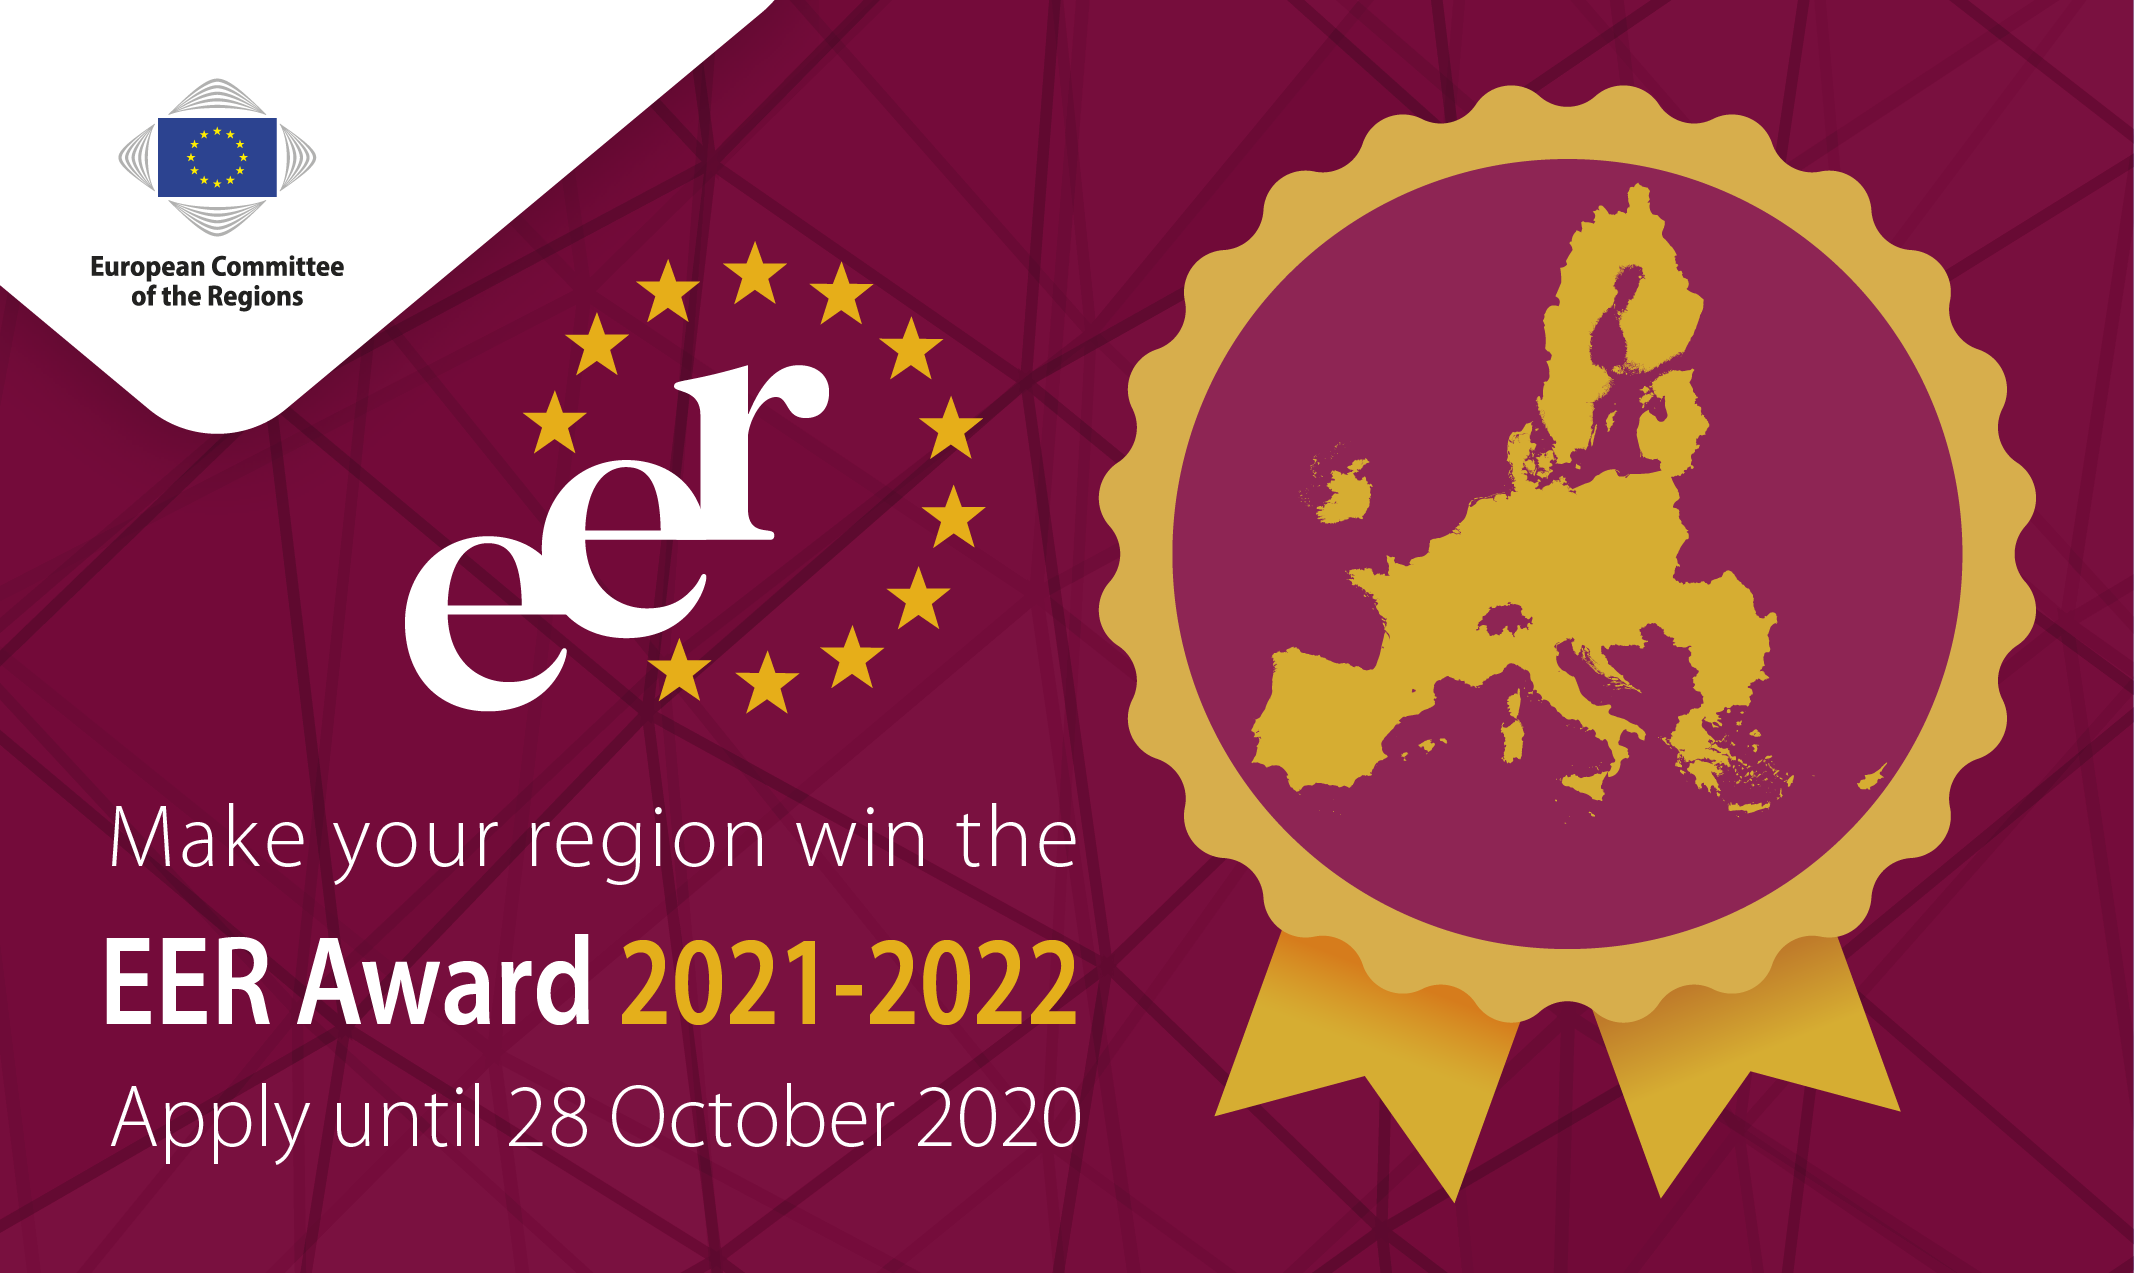 Launch of a special bi-annual EER Award 2021-2022 edition